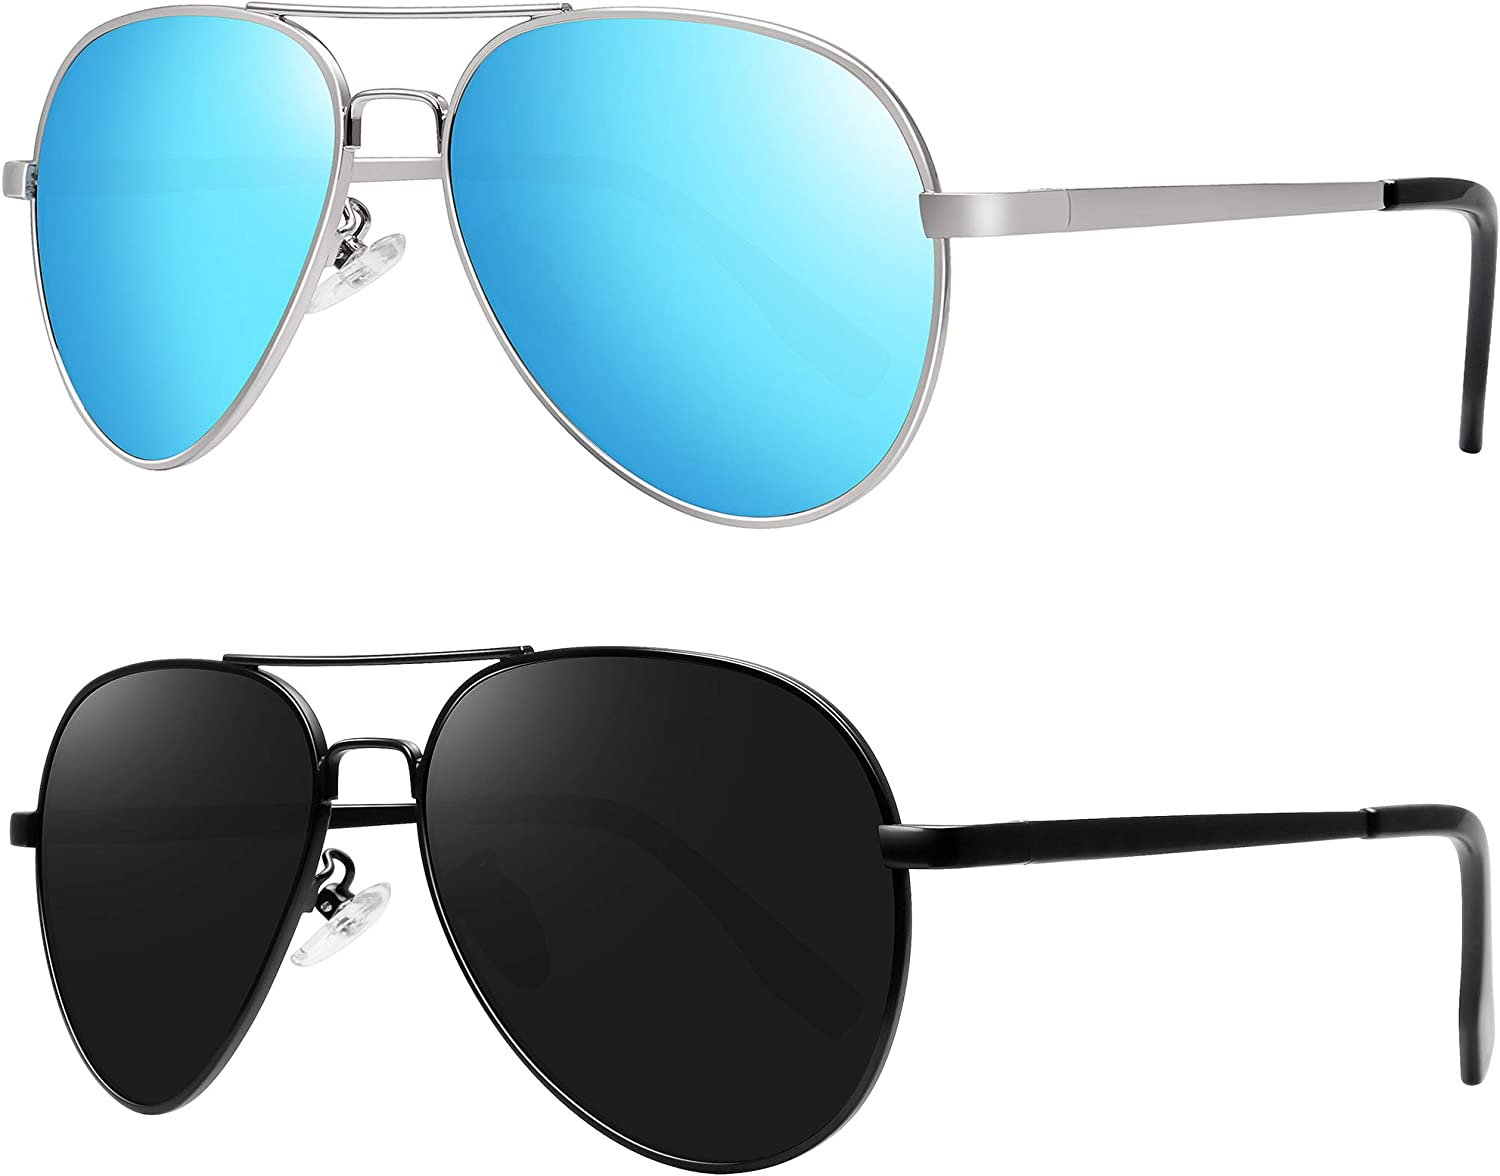 Kids Polarized 4 years warranty Aviator Sunglasses for Weekly update Mirrored Boys Girls L with